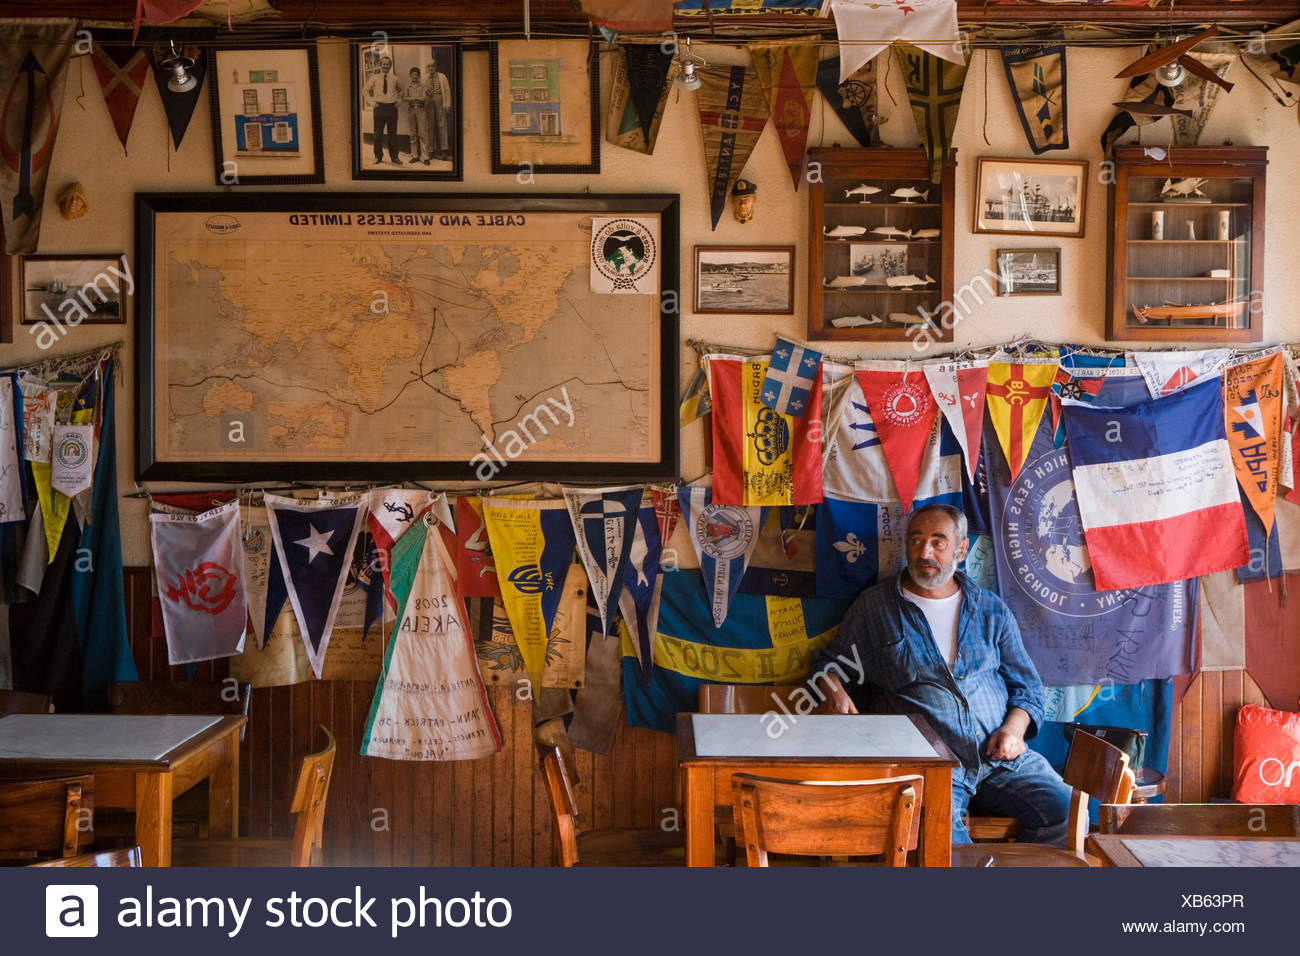 Interior of Peter Cafe Sport, a legendary yacht crew bar in the middle of the Atlantic Ocean, Horta, Faial Island, Azores, Portu Stock Photo